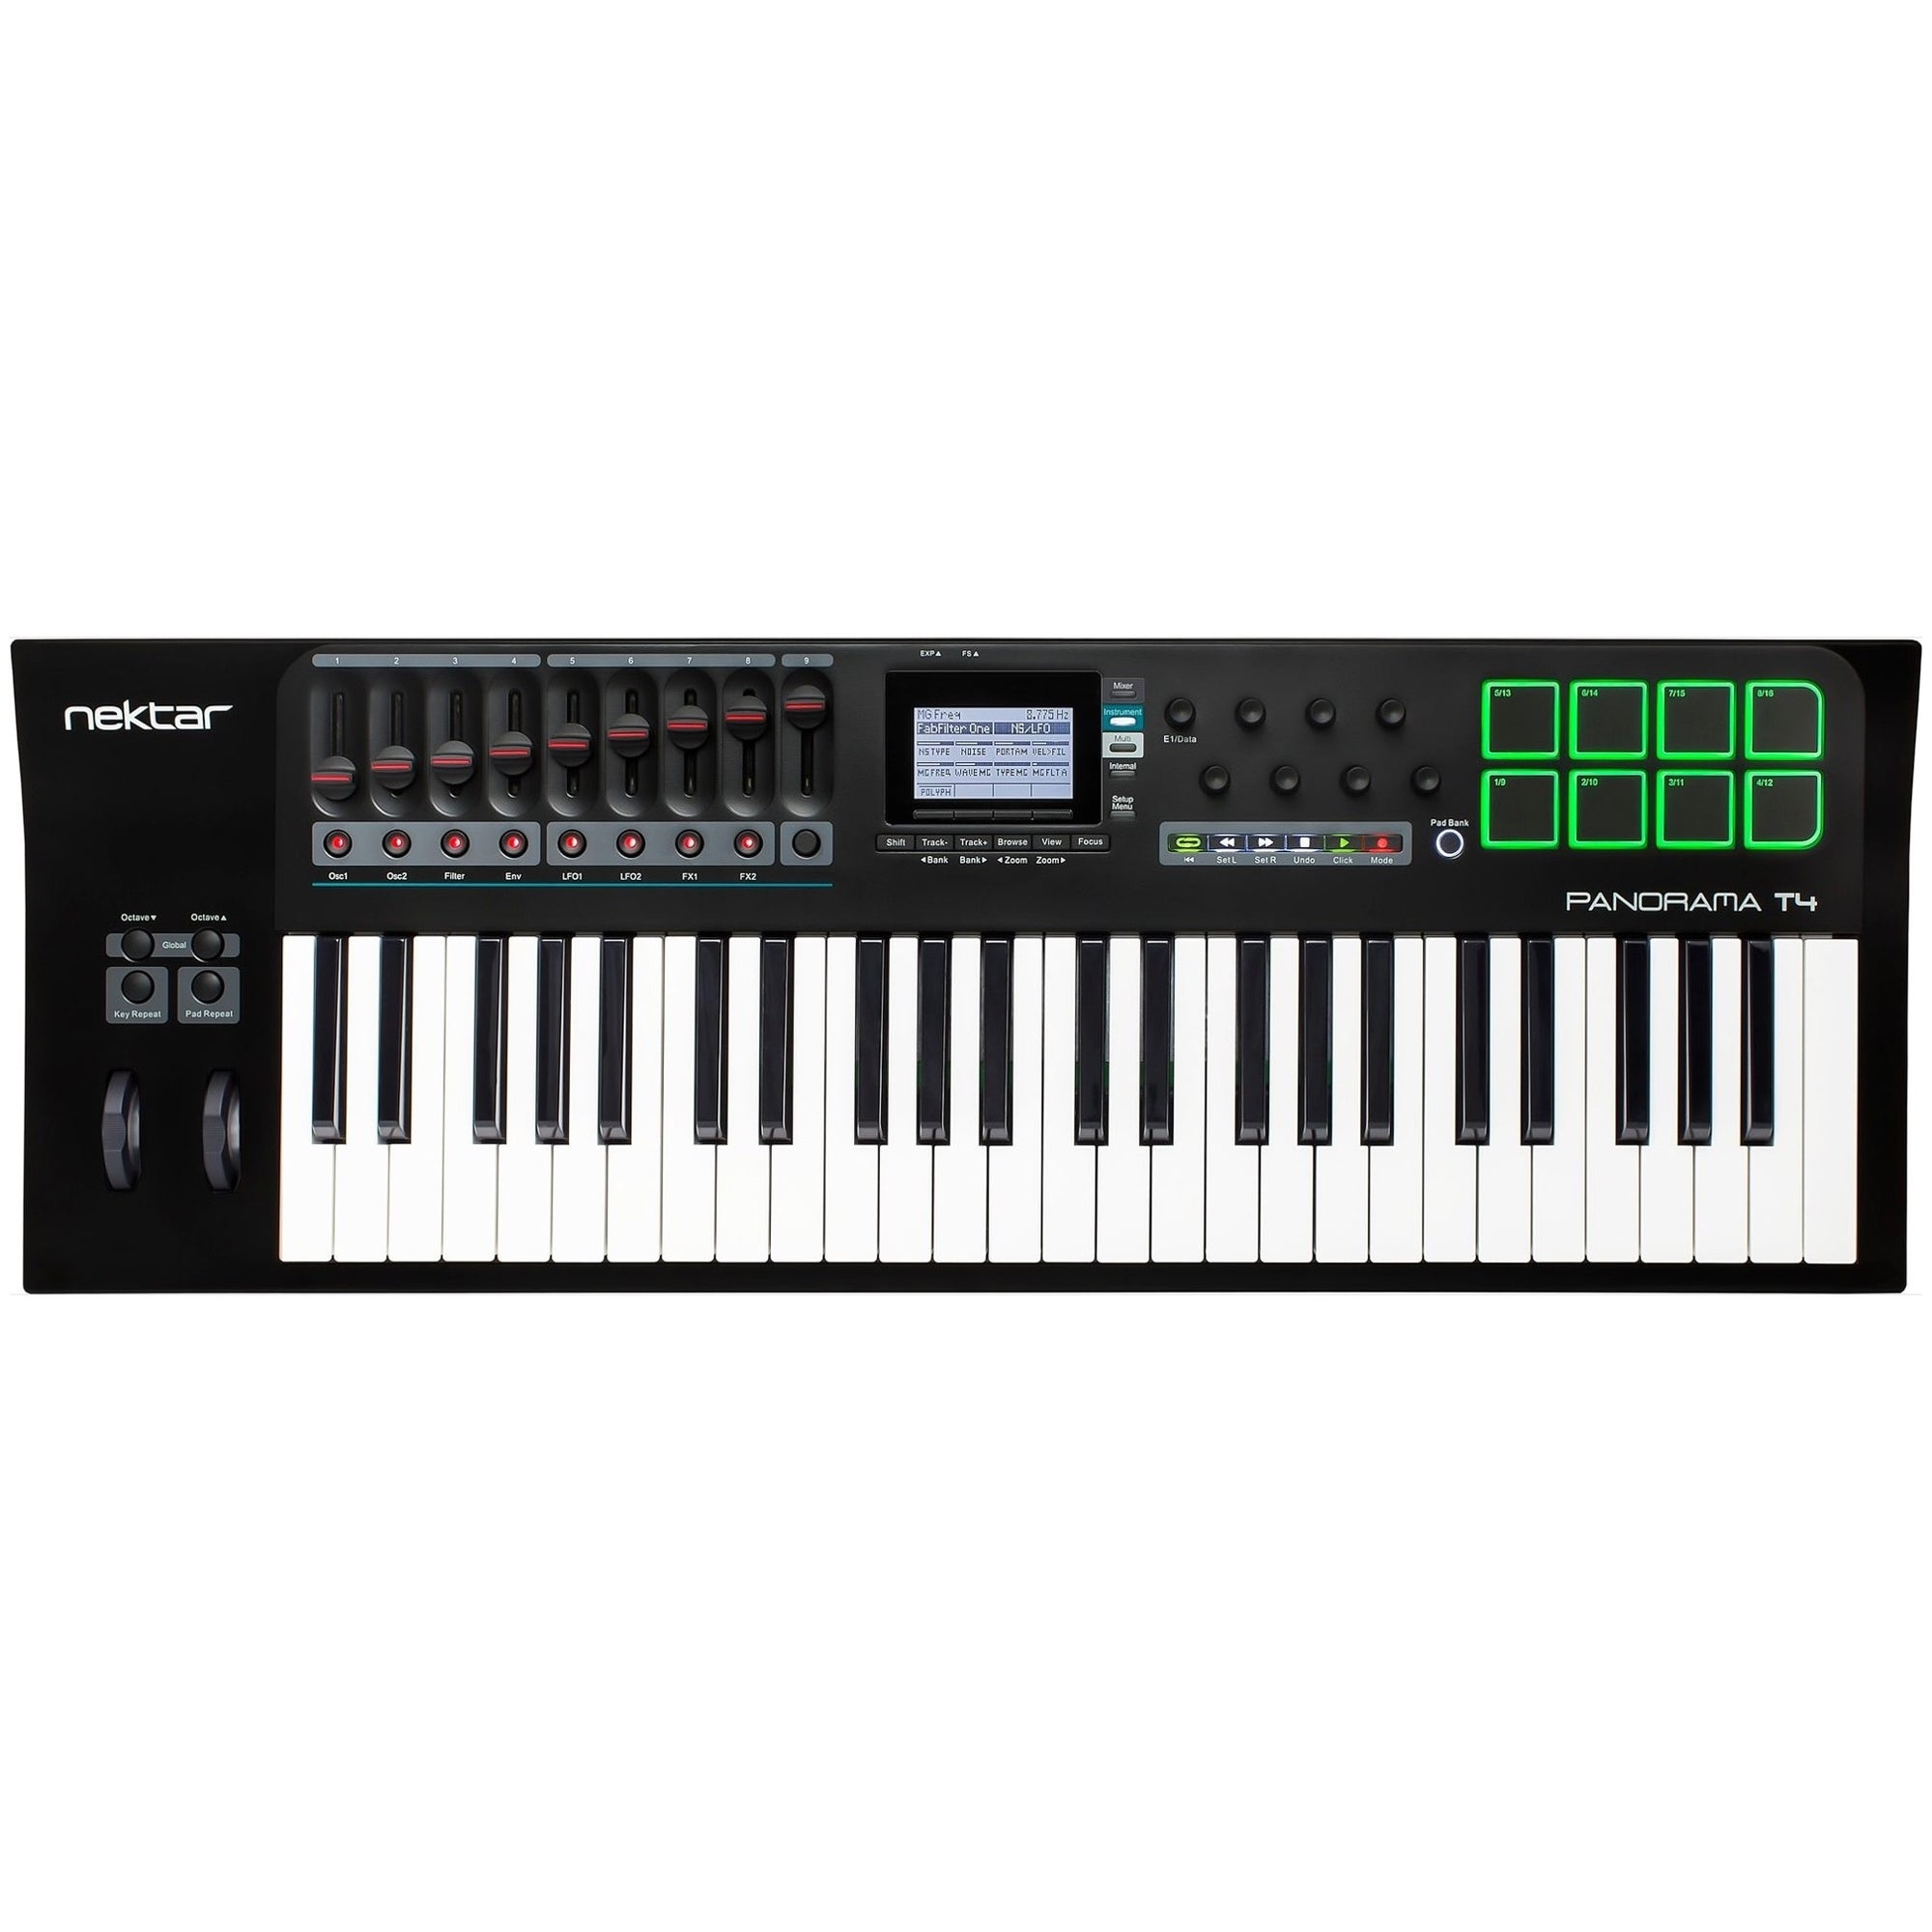 Nektar Panorama T4 USB and MIDI Keyboard Controller, 49-Key